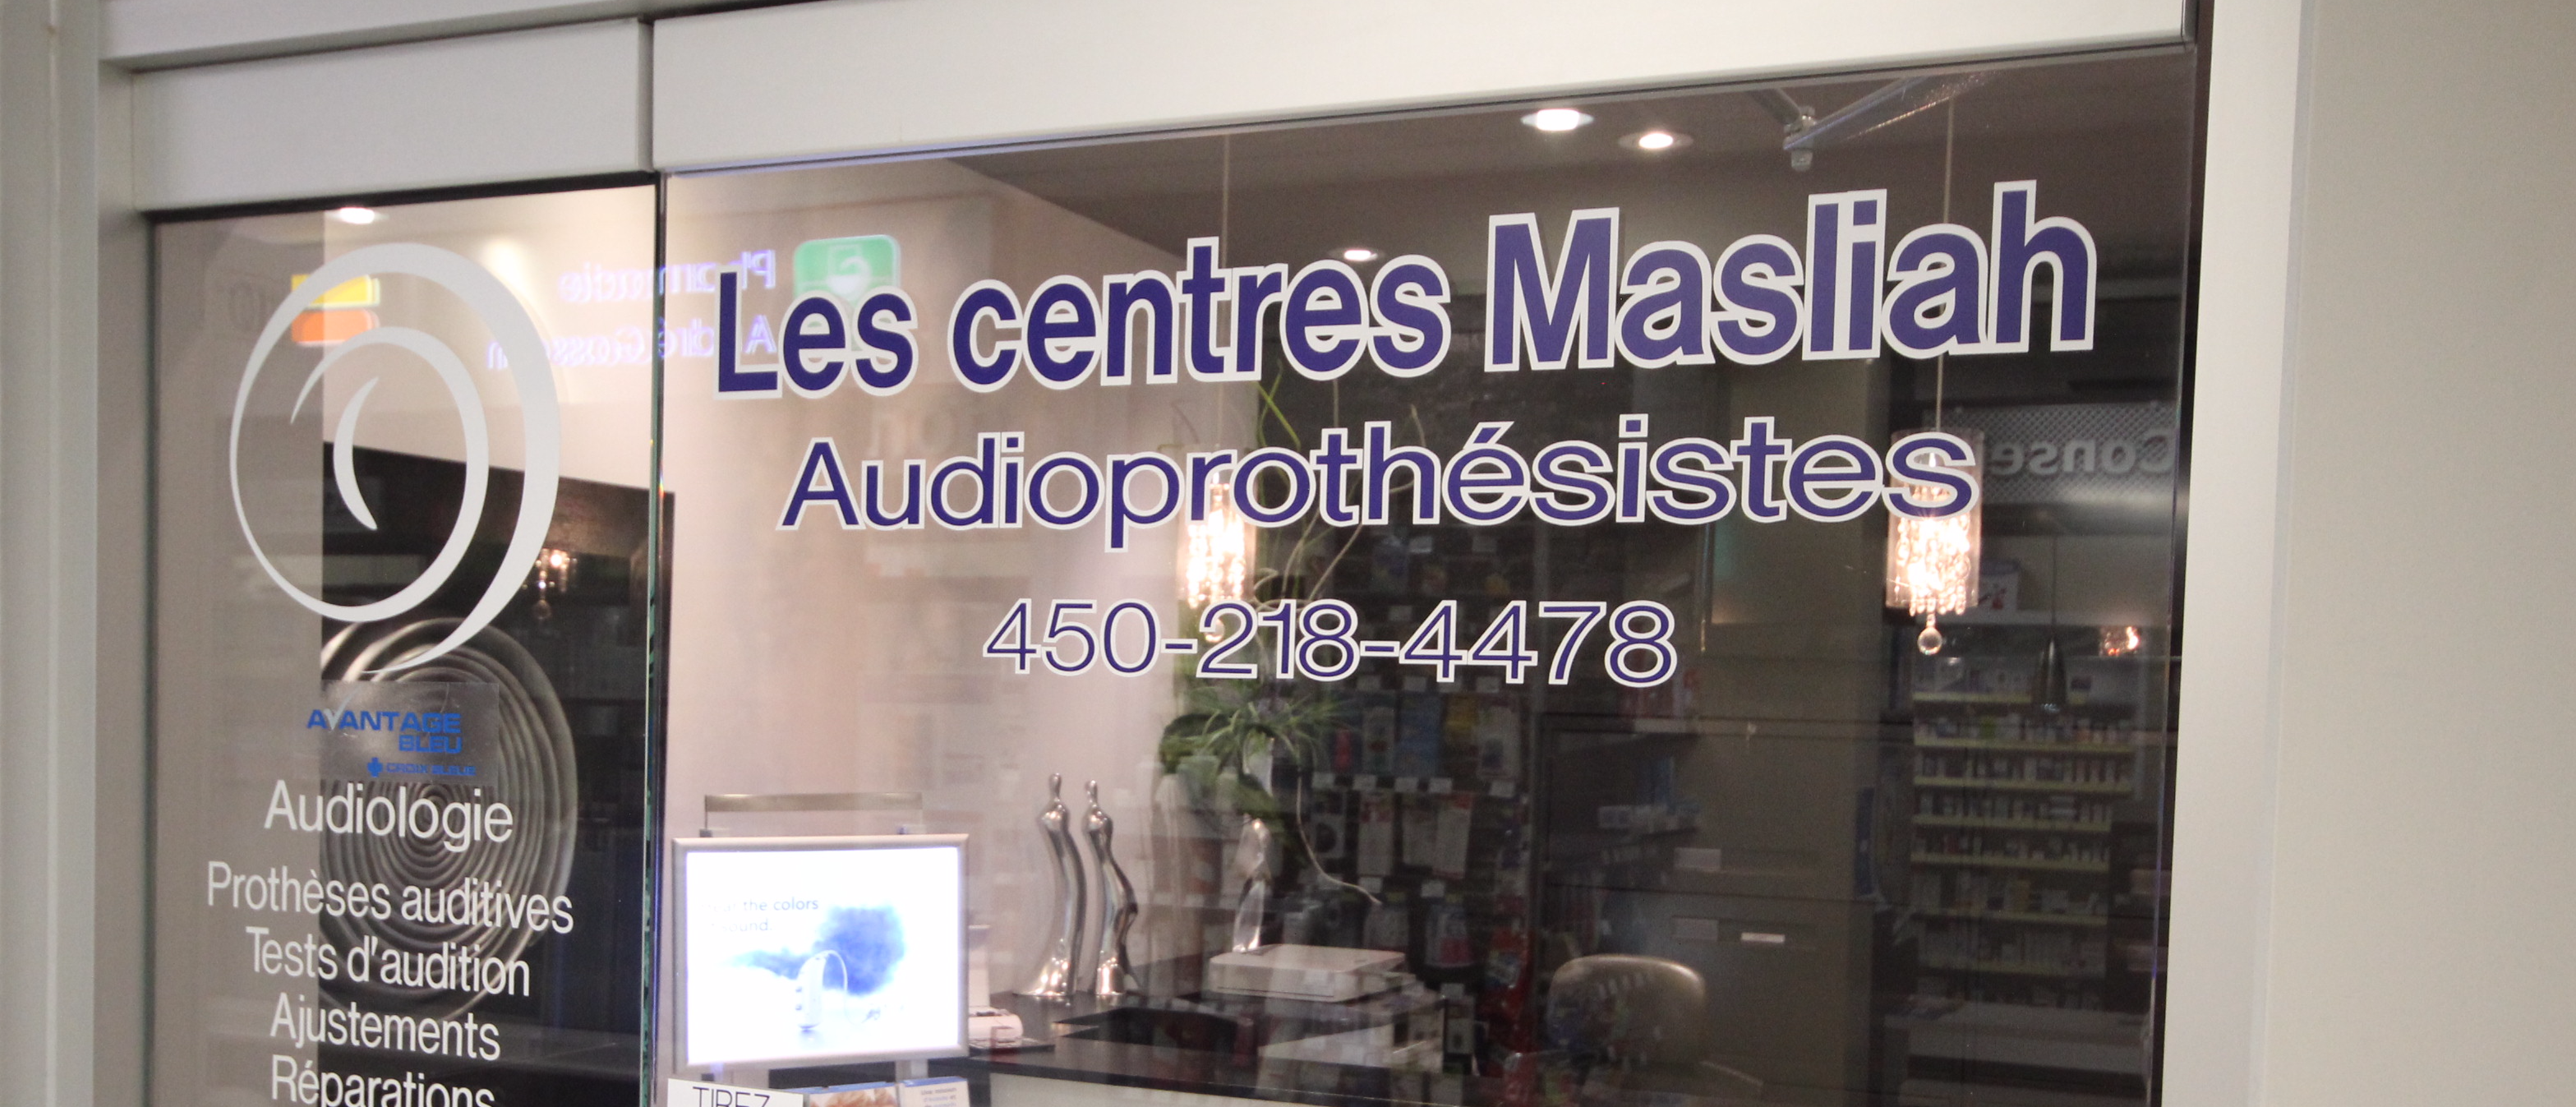 Audiologist and otolaryngologist in Vaudreuil-Dorion